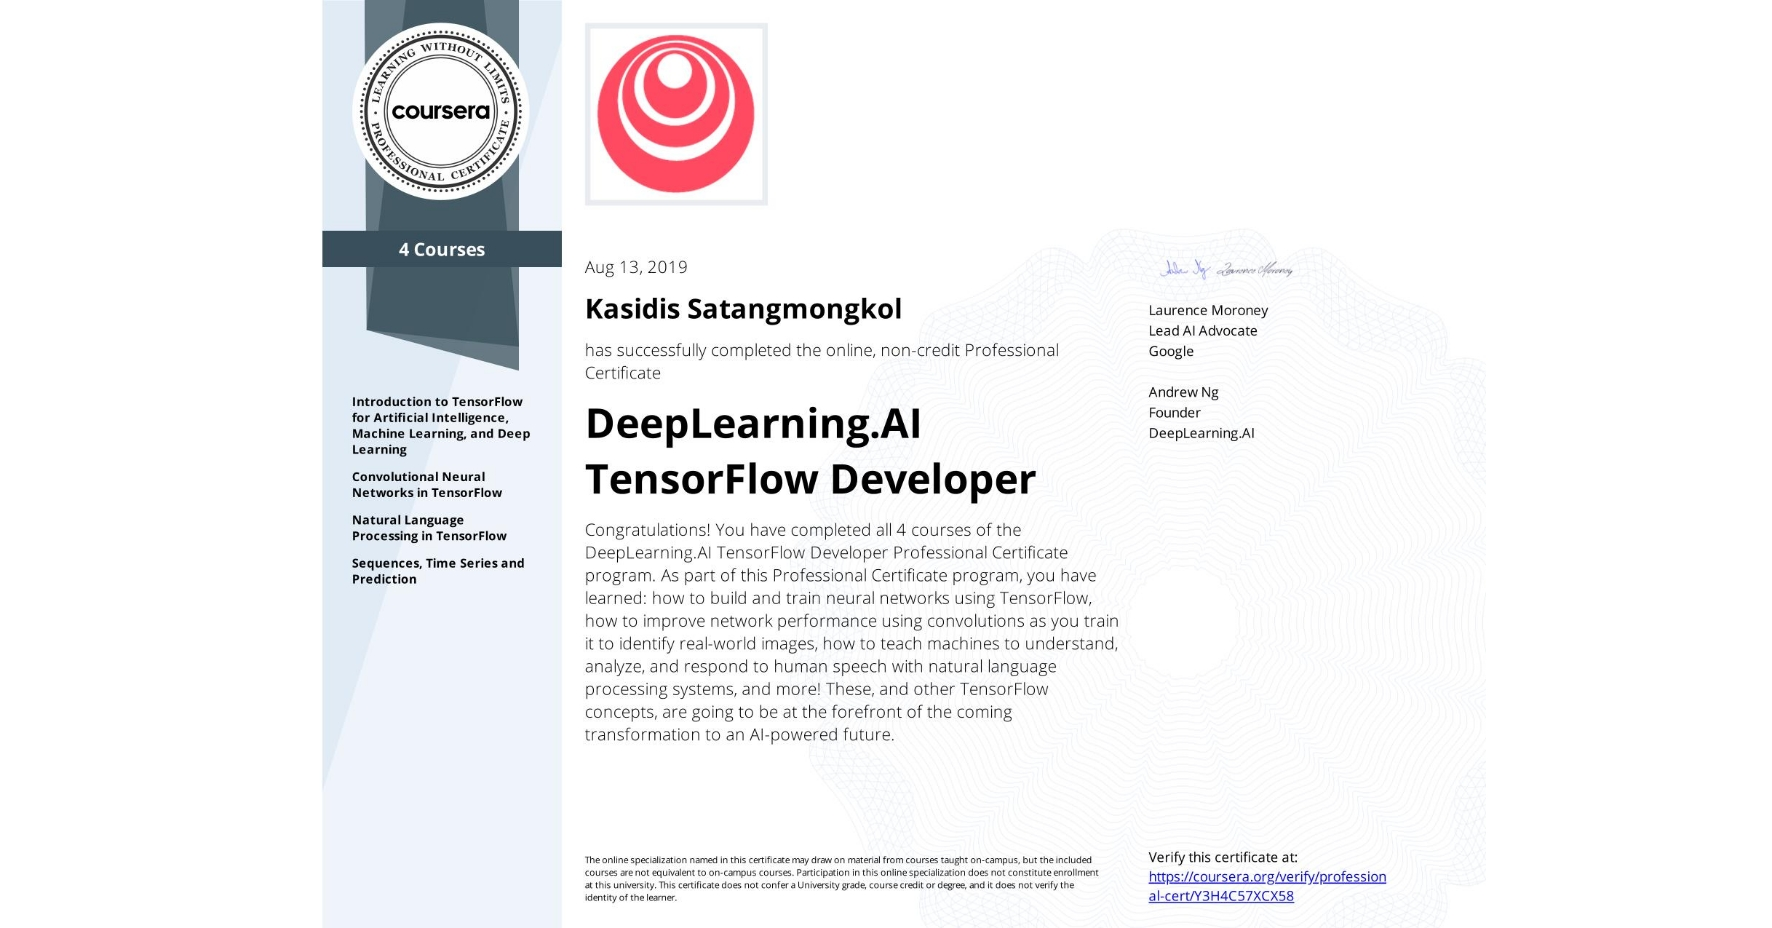 View certificate for KASIDIS SATANGMONGKOL, DeepLearning.AI TensorFlow Developer, offered through Coursera. Congratulations! You have completed all 4 courses of the DeepLearning.AI TensorFlow Developer Professional Certificate program.   As part of this Professional Certificate program, you have learned: how to build and train neural networks using TensorFlow, how to improve network performance using convolutions as you train it to identify real-world images, how to teach machines to understand, analyze, and respond to human speech with natural language processing systems, and more!  These, and other TensorFlow concepts, are going to be at the forefront of the coming transformation to an AI-powered future.